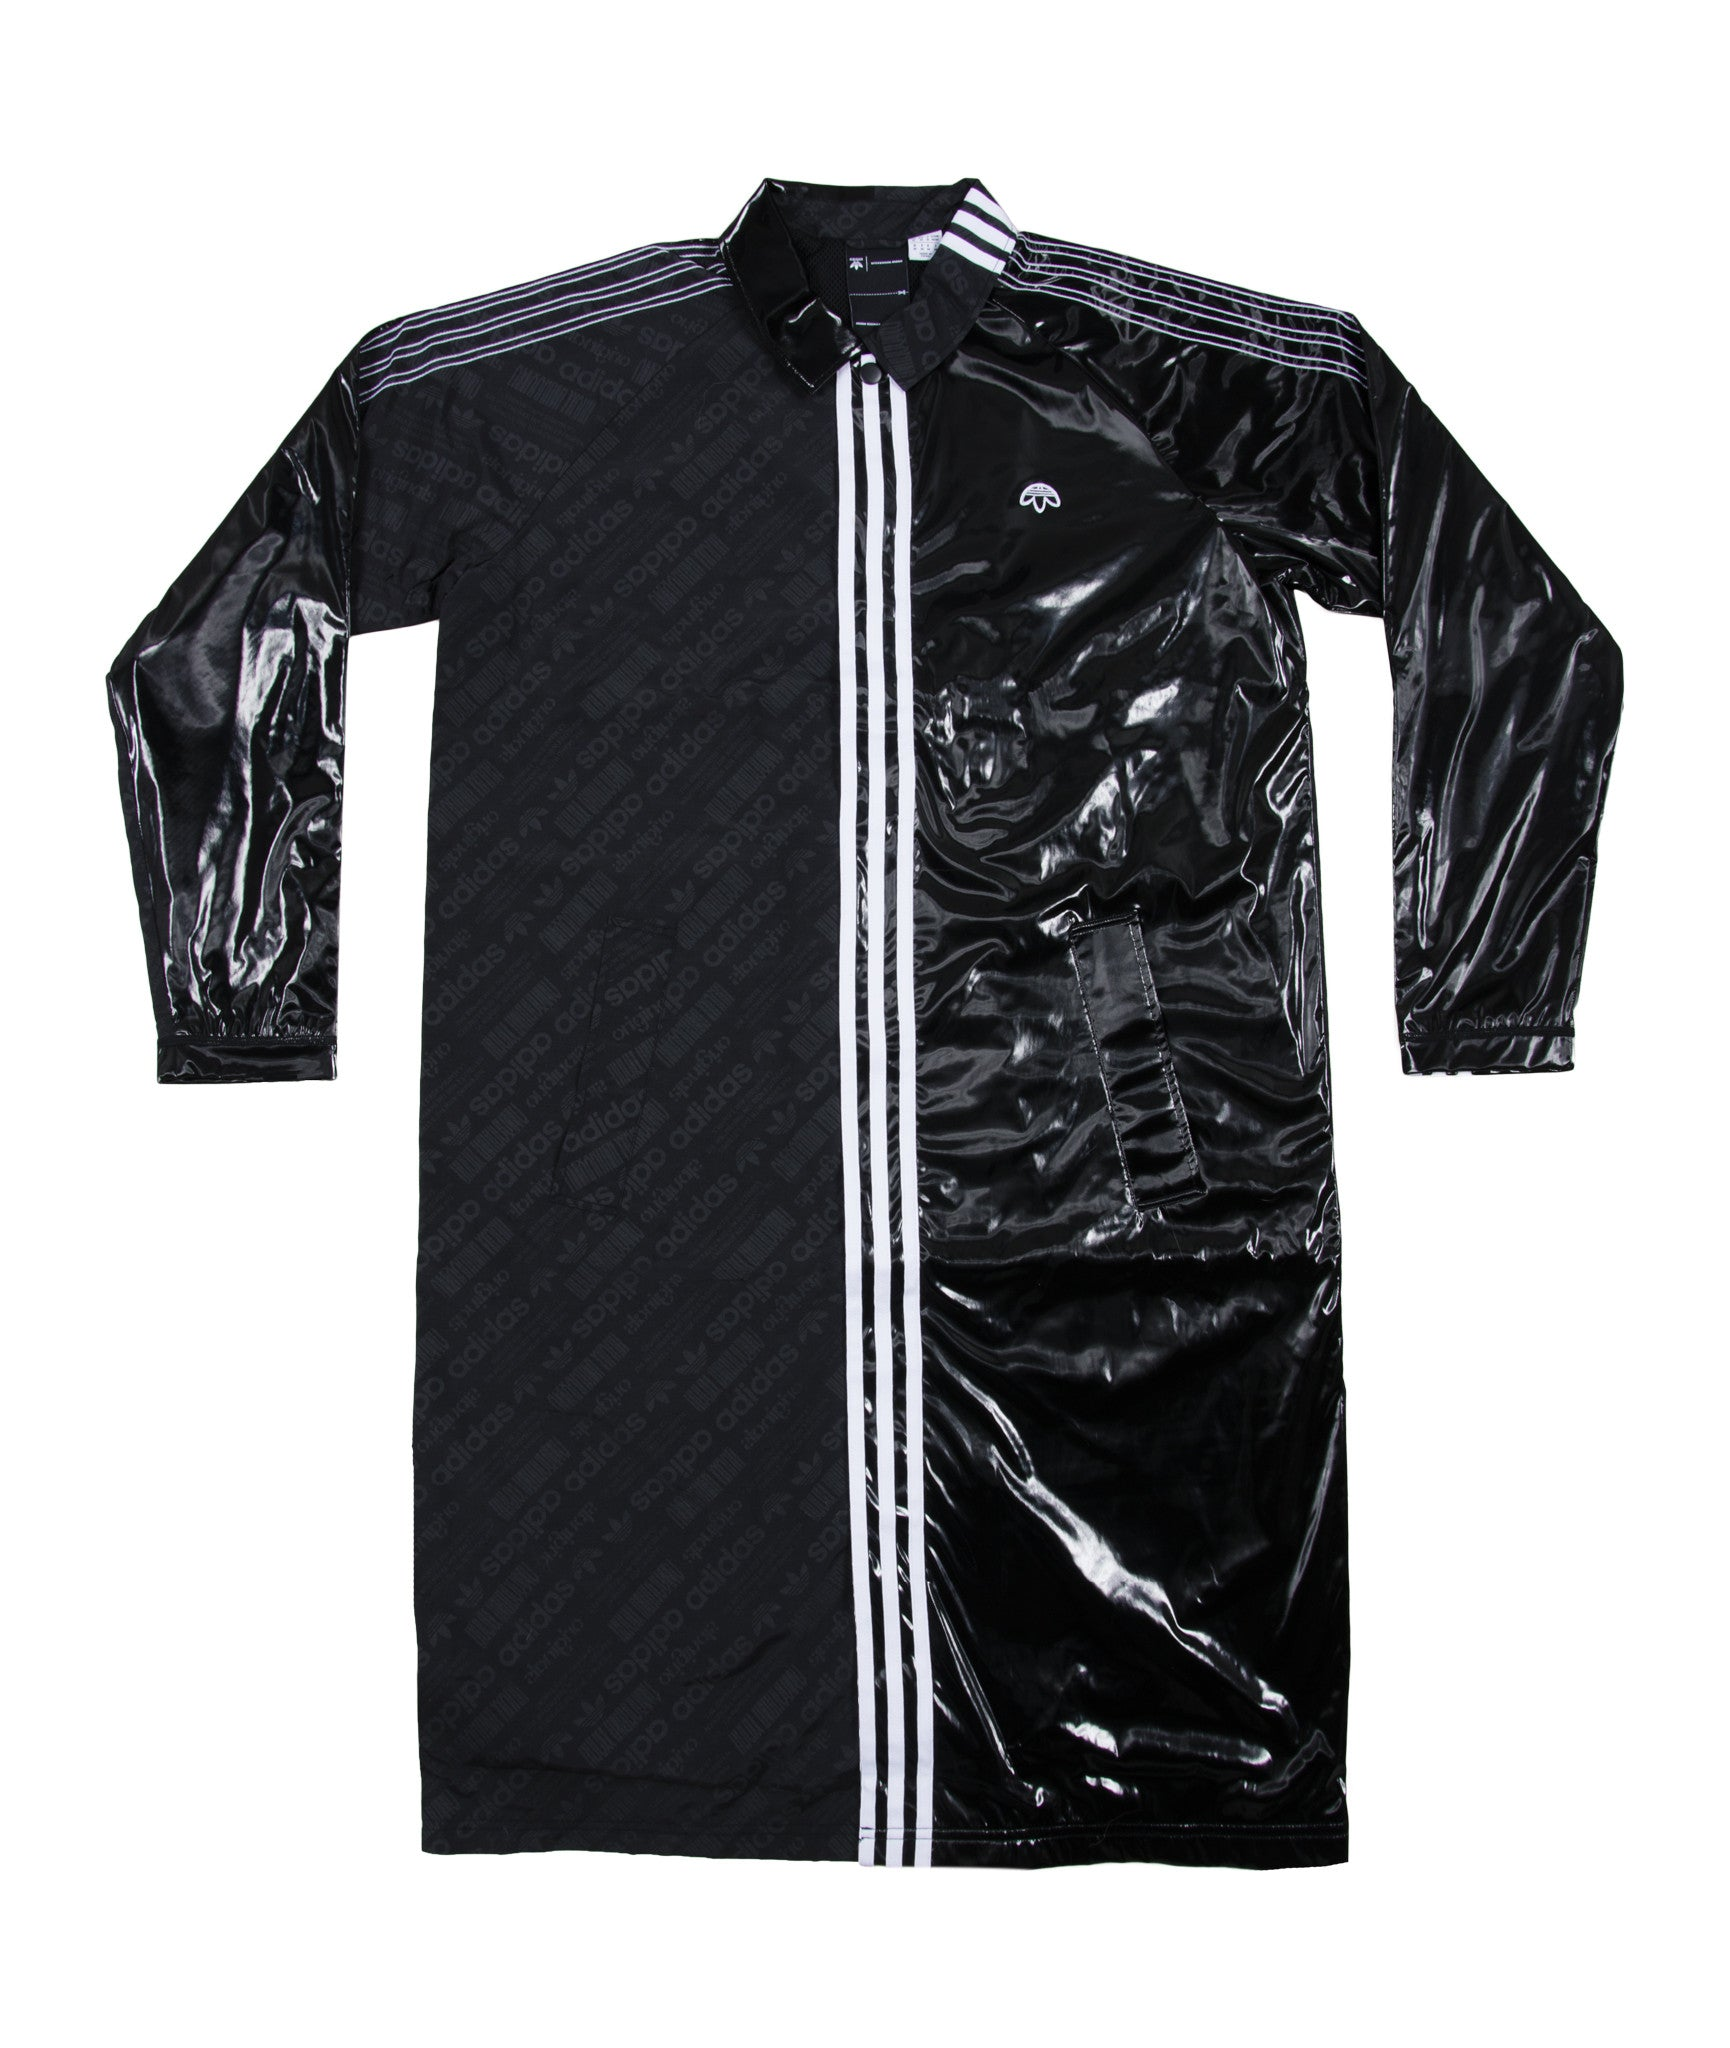 158 ALEXANDER WANG BY ADIDAS PATCH COAT - BLACK